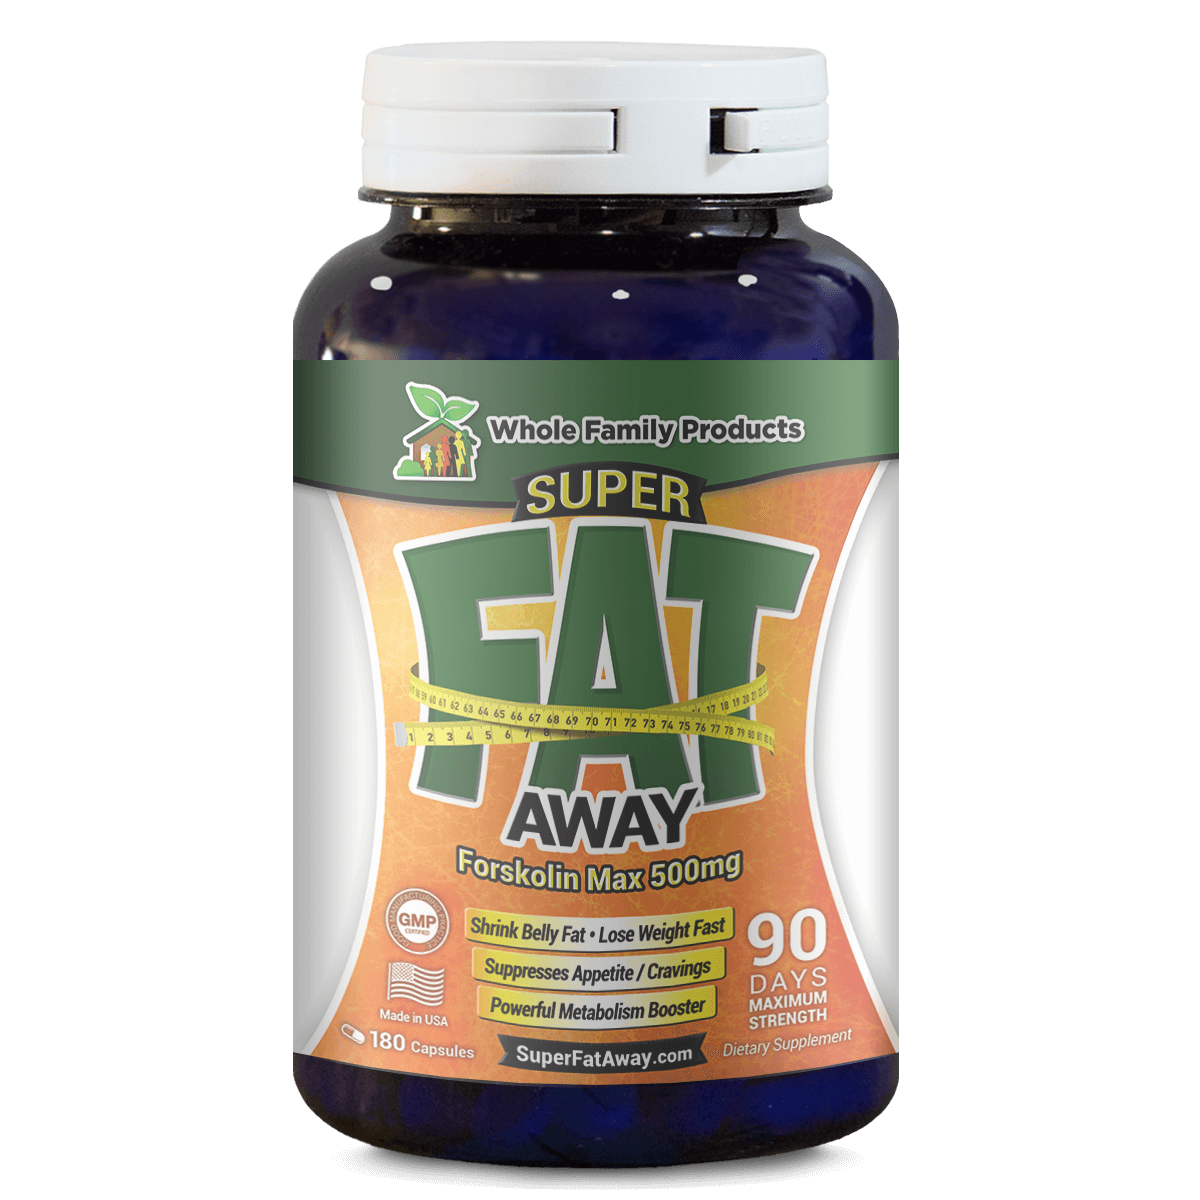 Super Fat Away Best Supplement To Help Lose Weight Fast